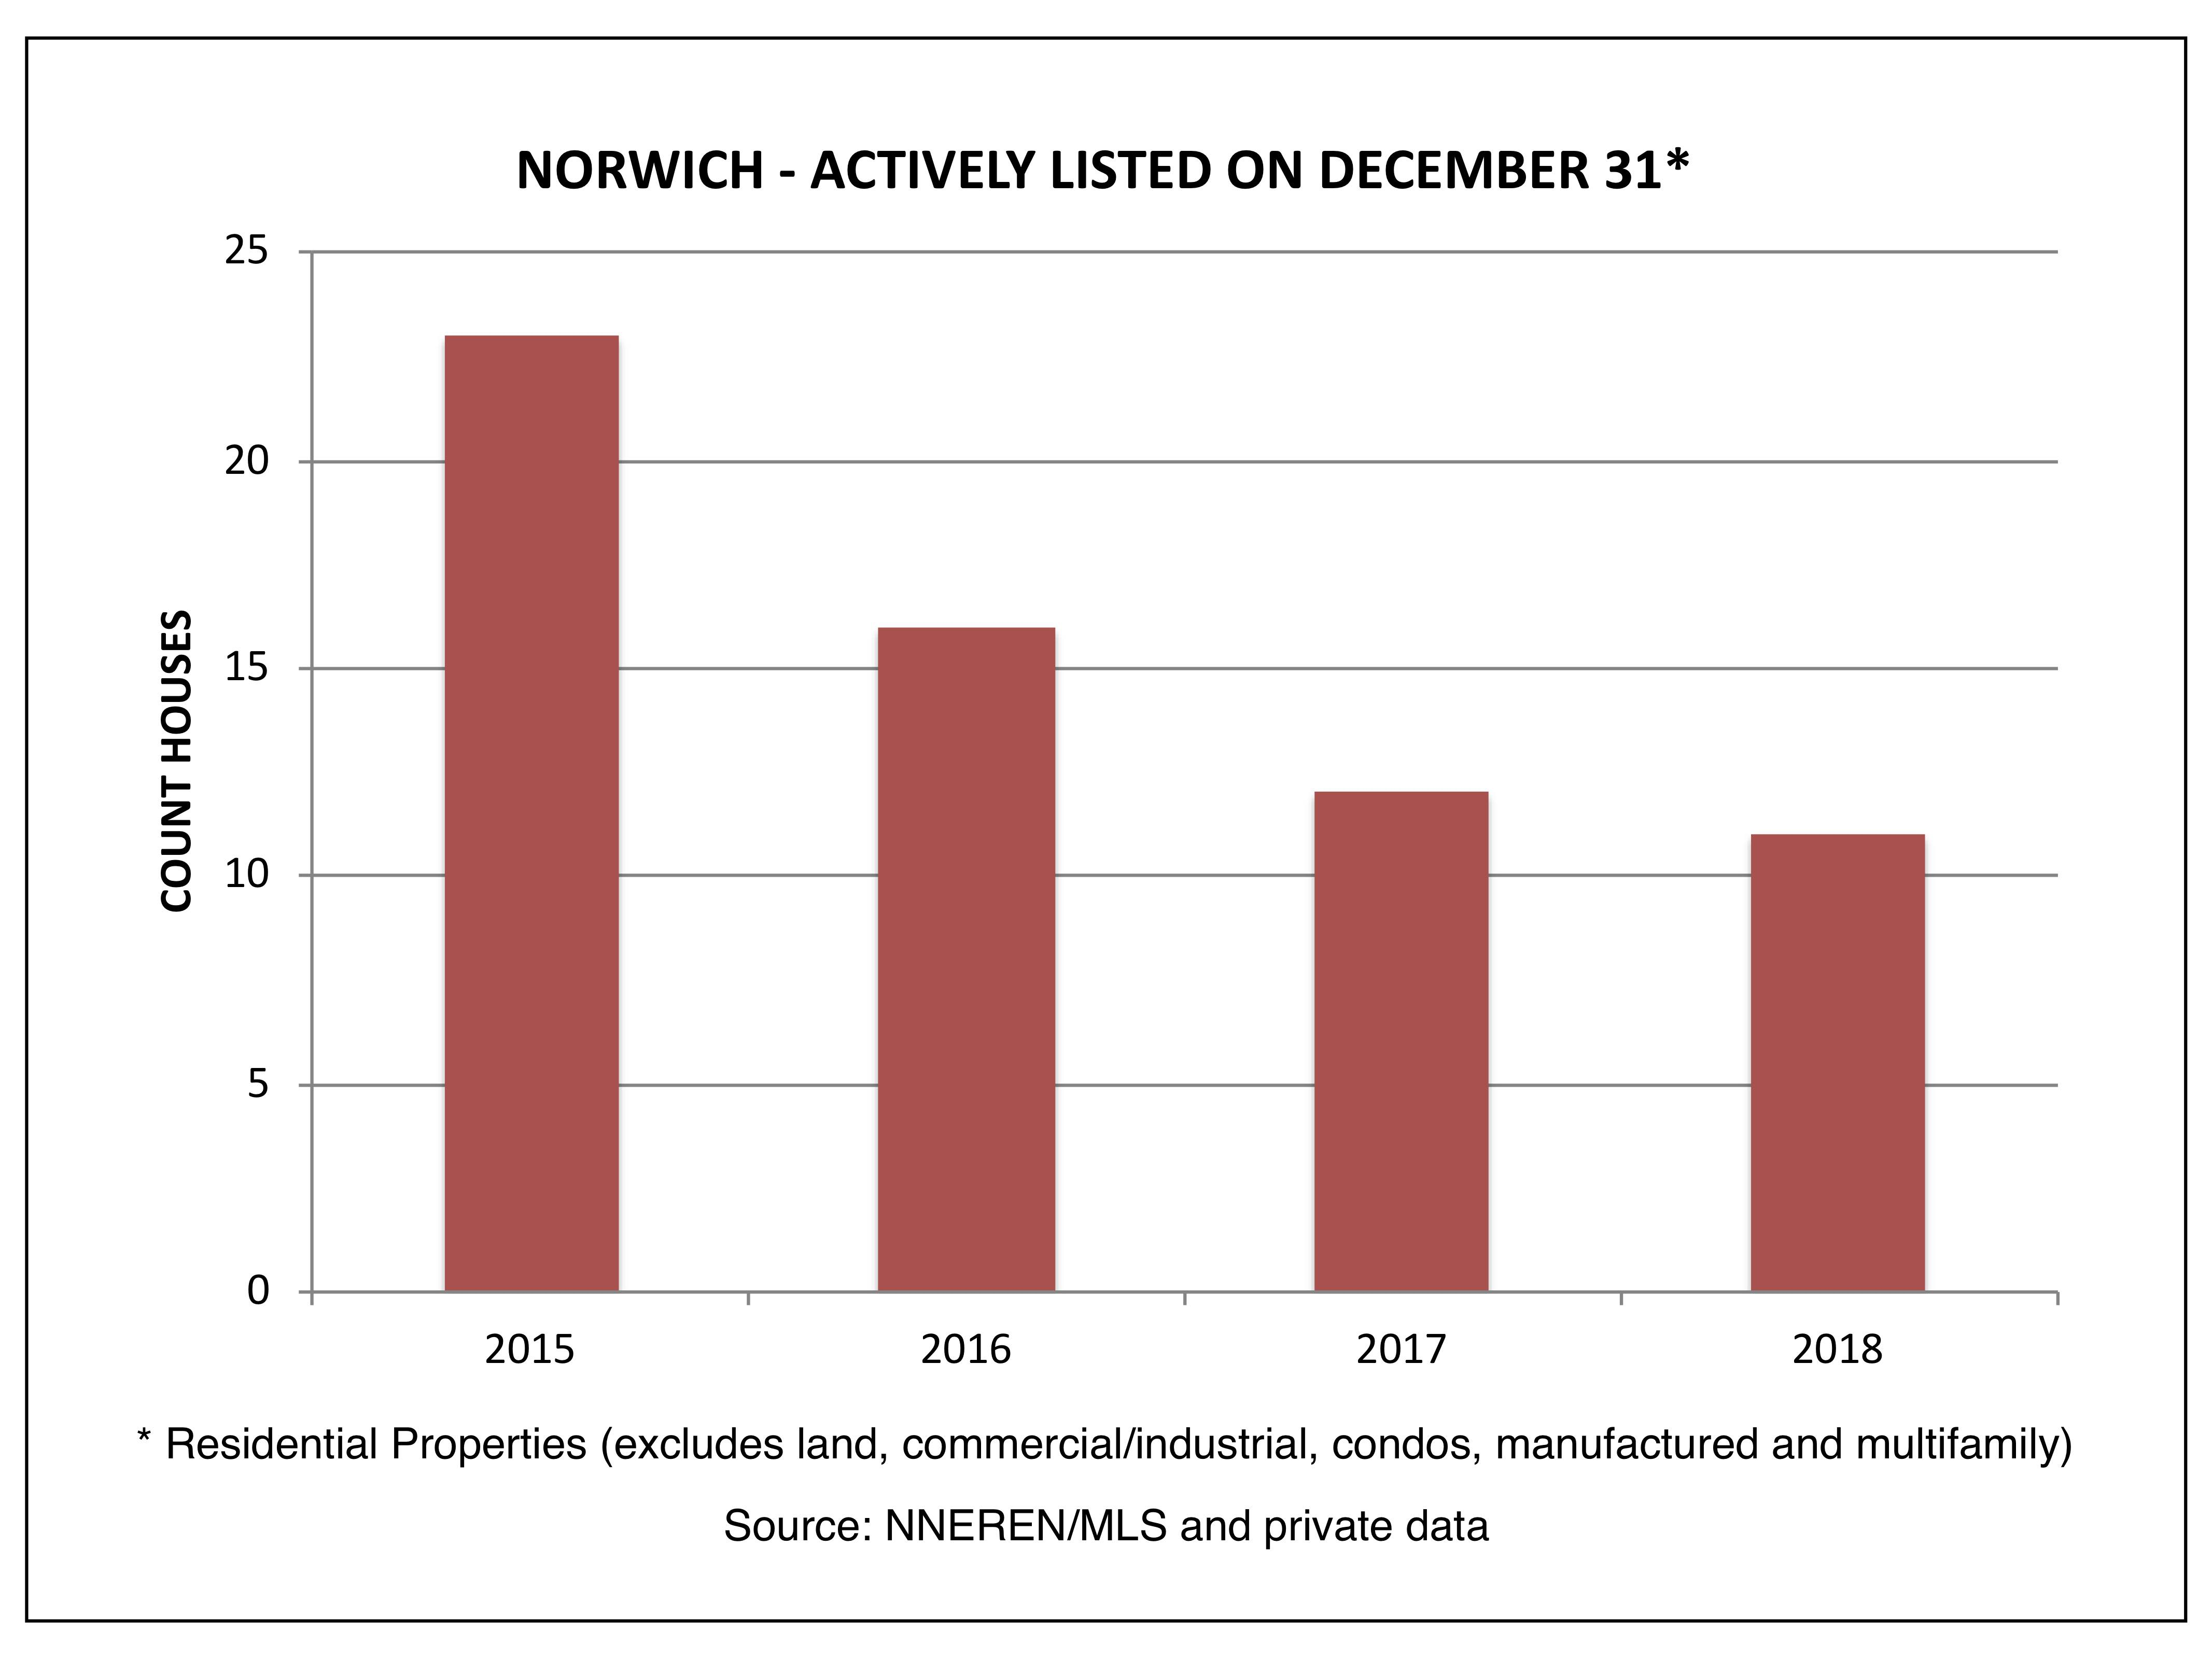 Norwich VT Real Estate - Actively Listed on December 31